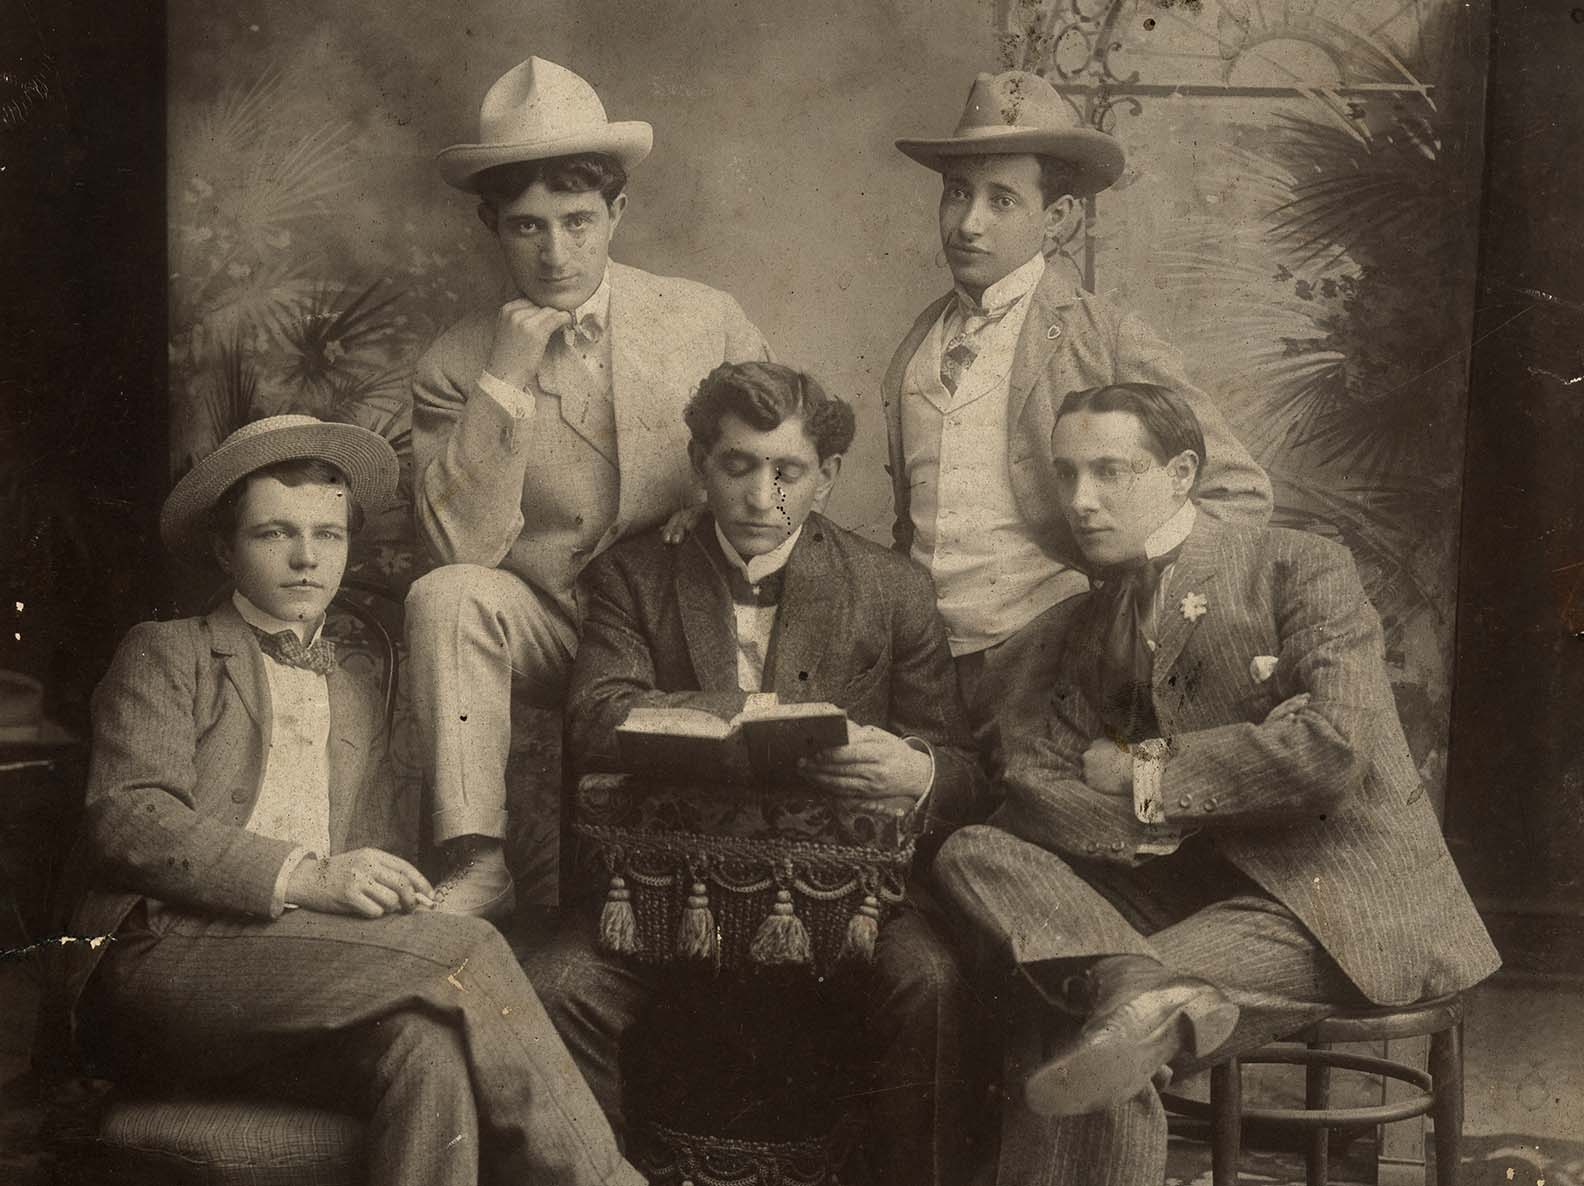 Former 97 Orchard resident Jacob Burinescu and his acting troupe circa 1915